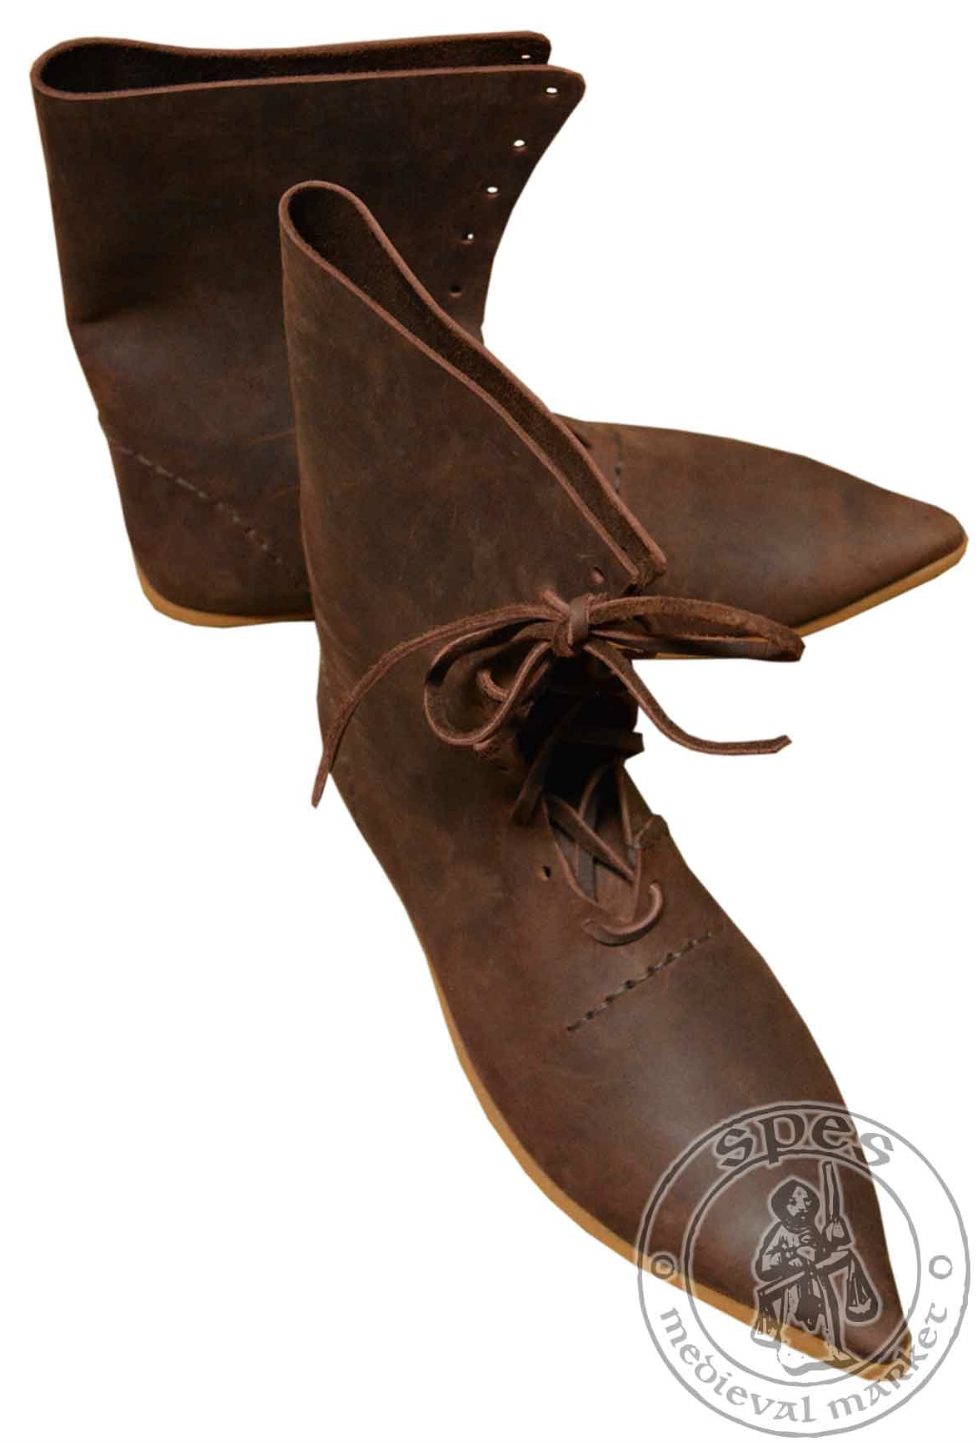 Chaussures Homme : MS1433 - 210 €